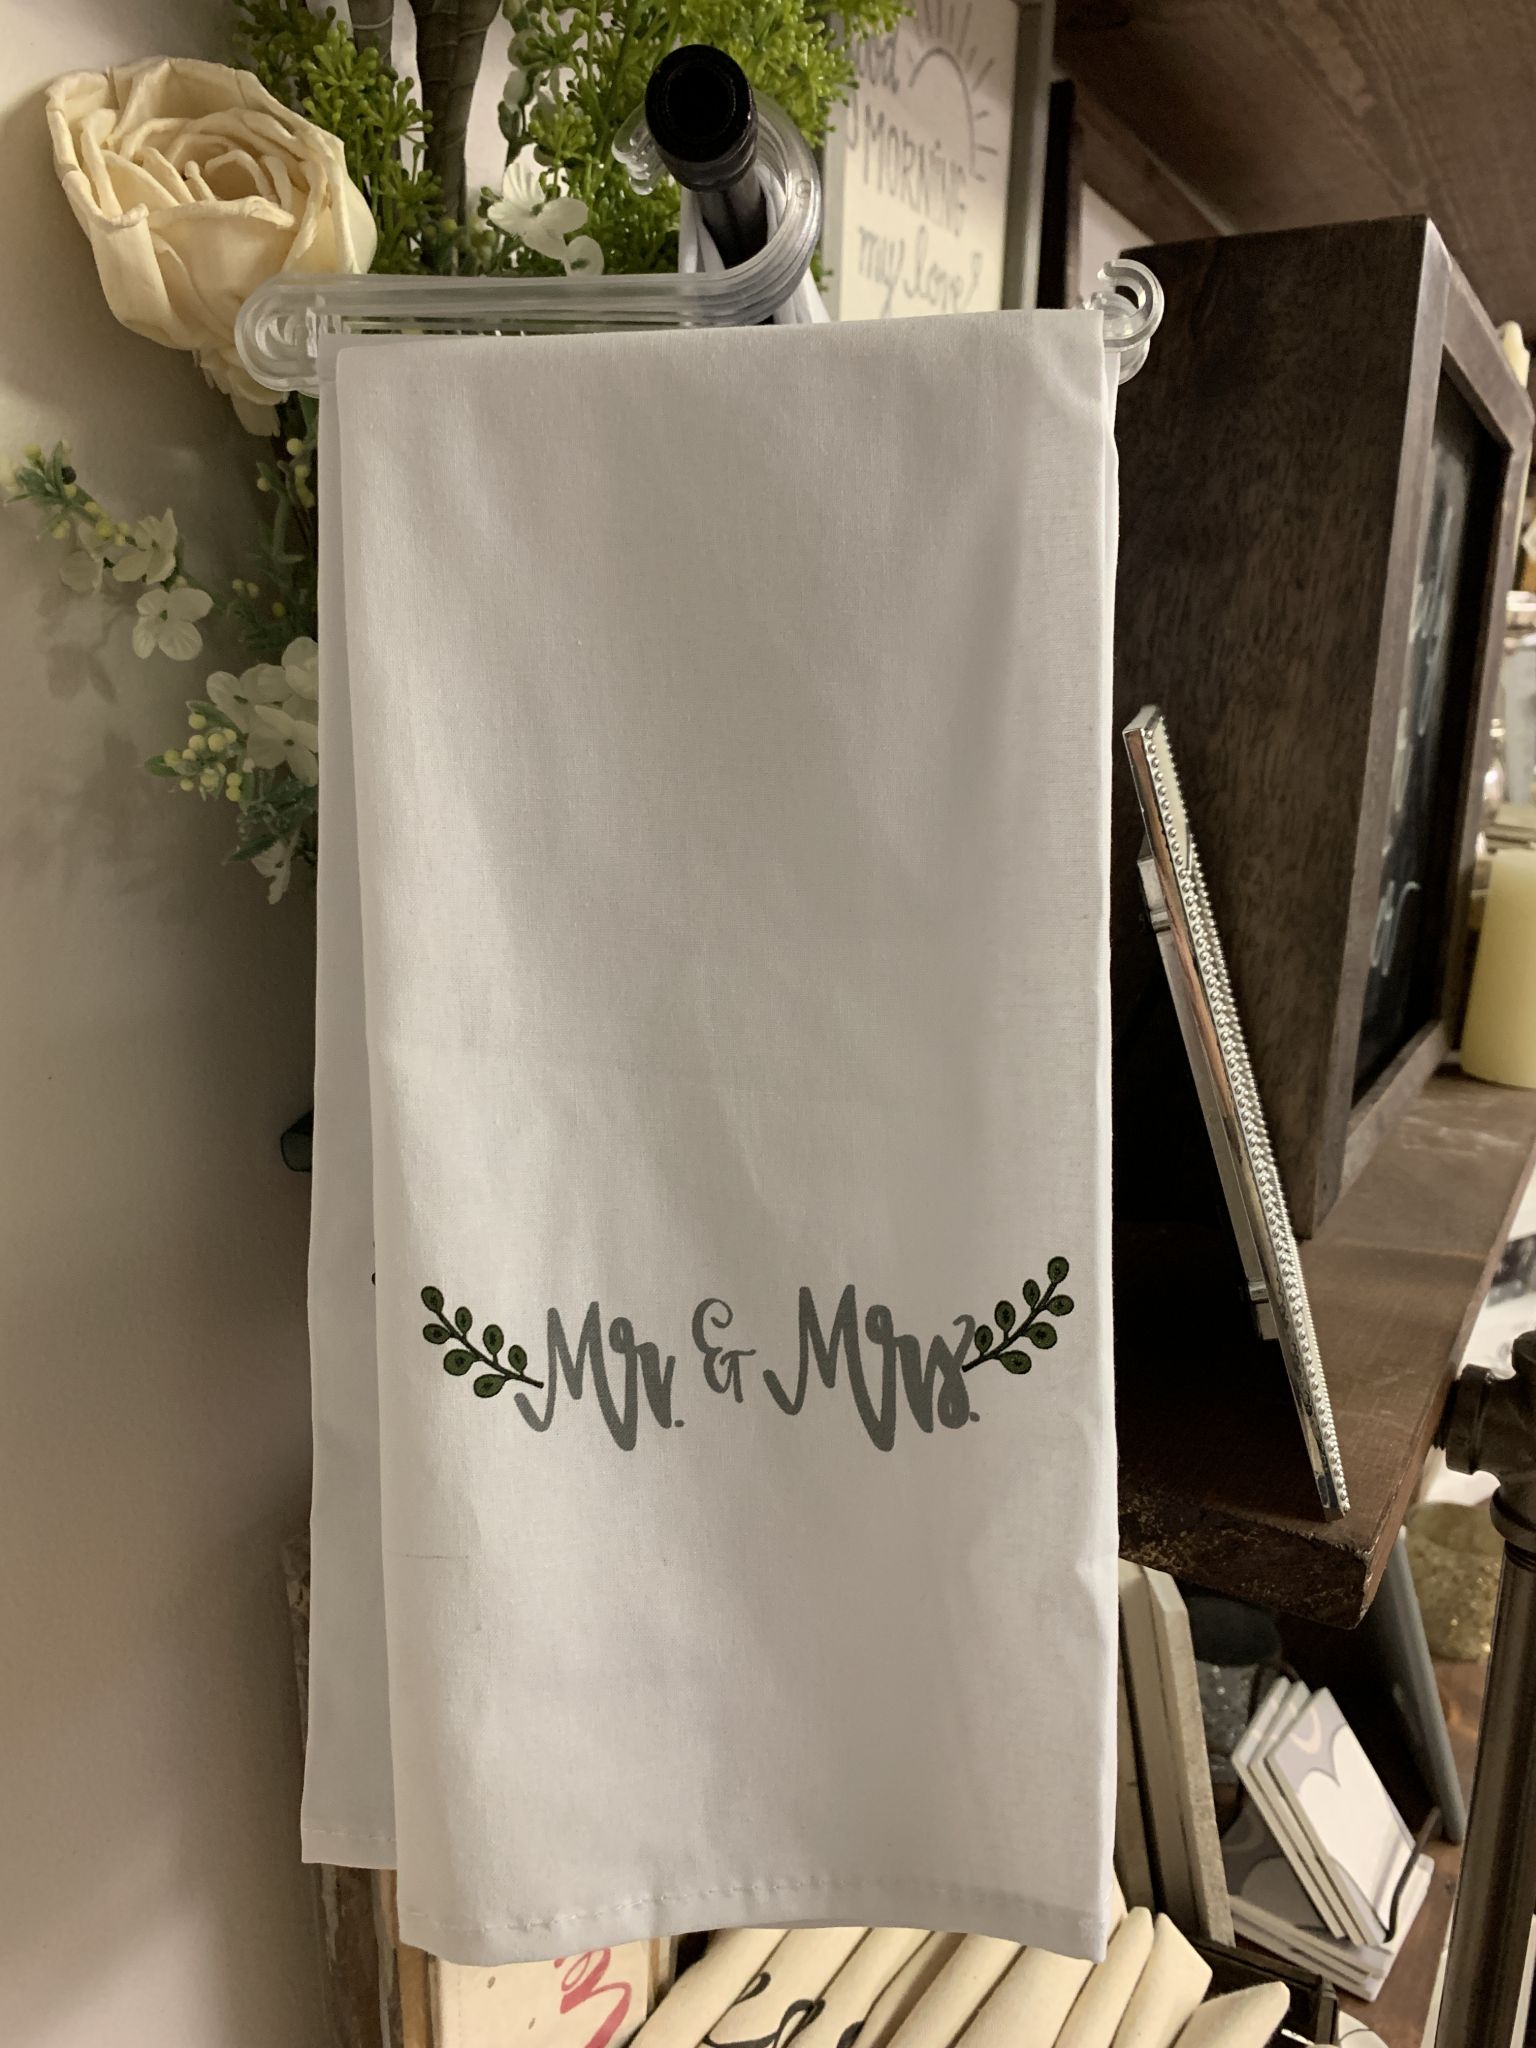 Mr & Mrs Tea Towel 683731130620